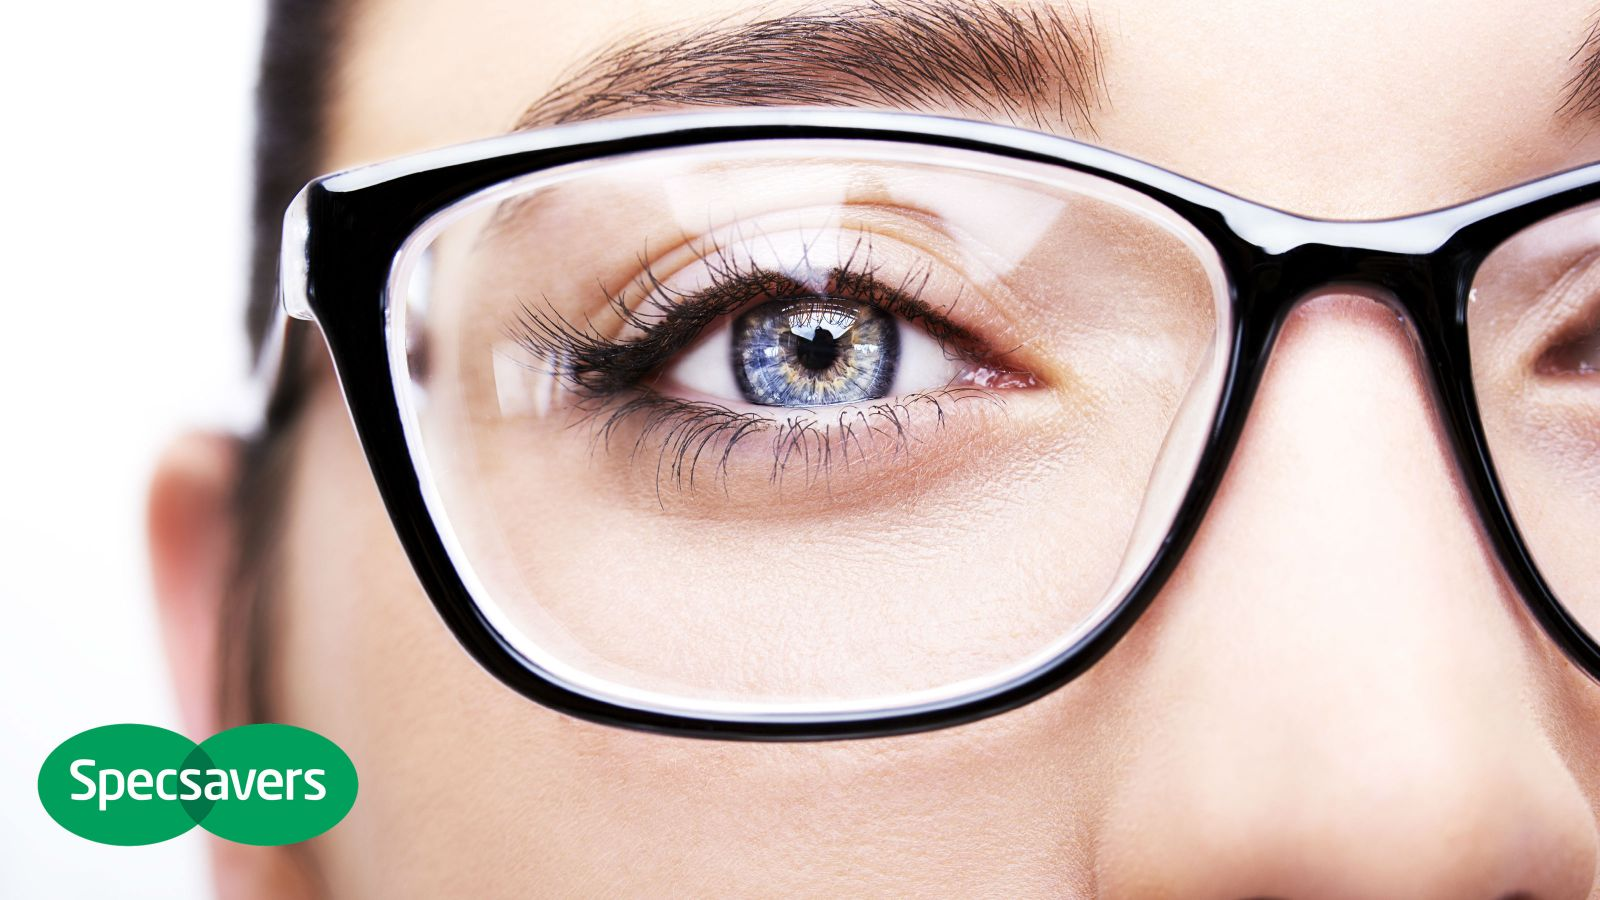 A woman wearing glasses from Specsavers.